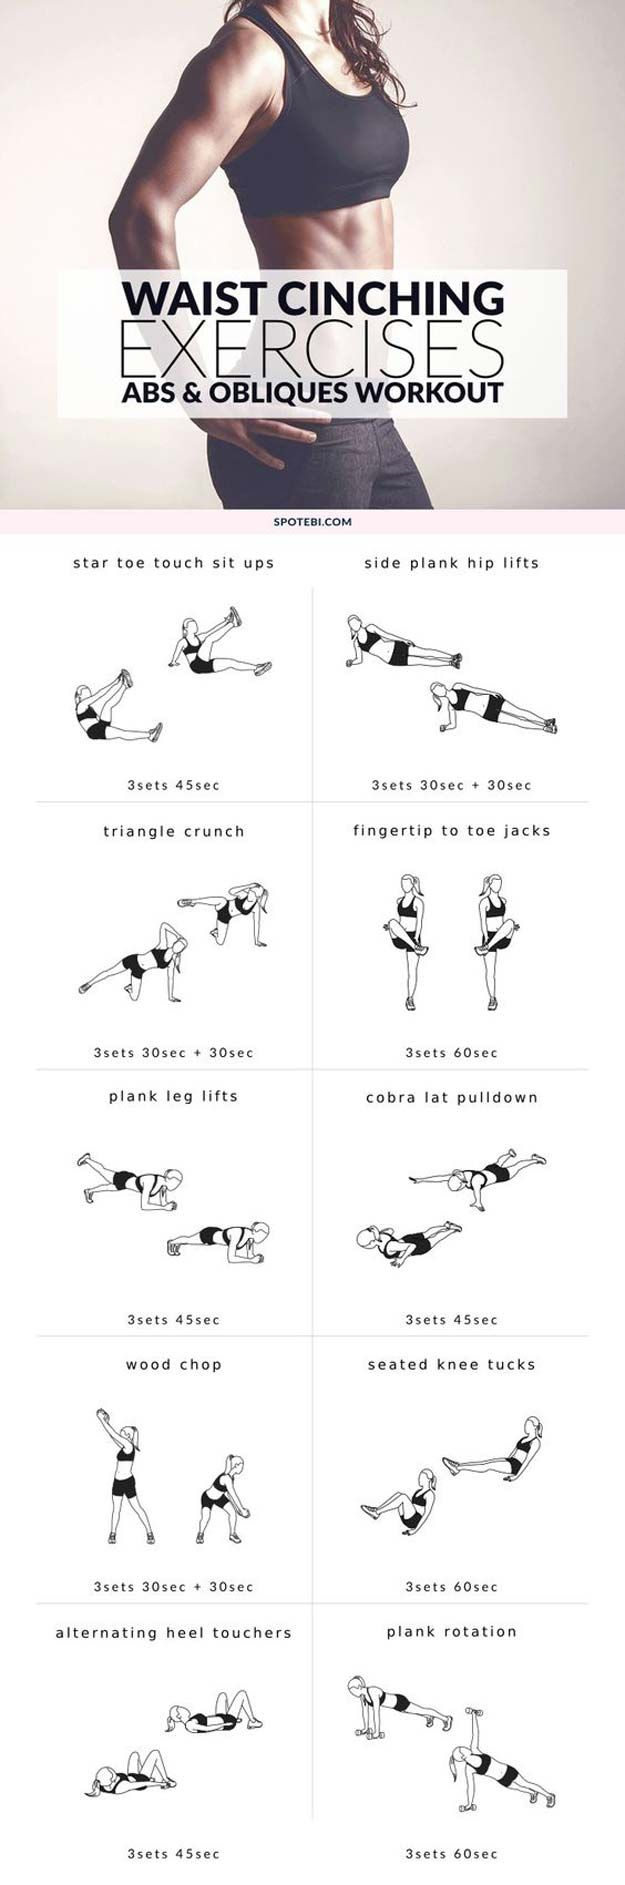 Best Exercises for Abs - Core Exercises For Women - Best Ab Exercises And Ab Workouts For A Flat Stomach, Increased Health Fitness, And Weightless. Ab Exercises For Women, For Men, And For Kids. Great With A Diet To Help With Losing Weight From The Lower Belly, Getting Rid Of That Muffin Top, And Increasing Muscle To Refine Your Stomach And Hip Shape. Fat Burners And Calorie Burners For A Flat Belly, Six Pack Abs, And Summer Beach Body. Crunches And More…